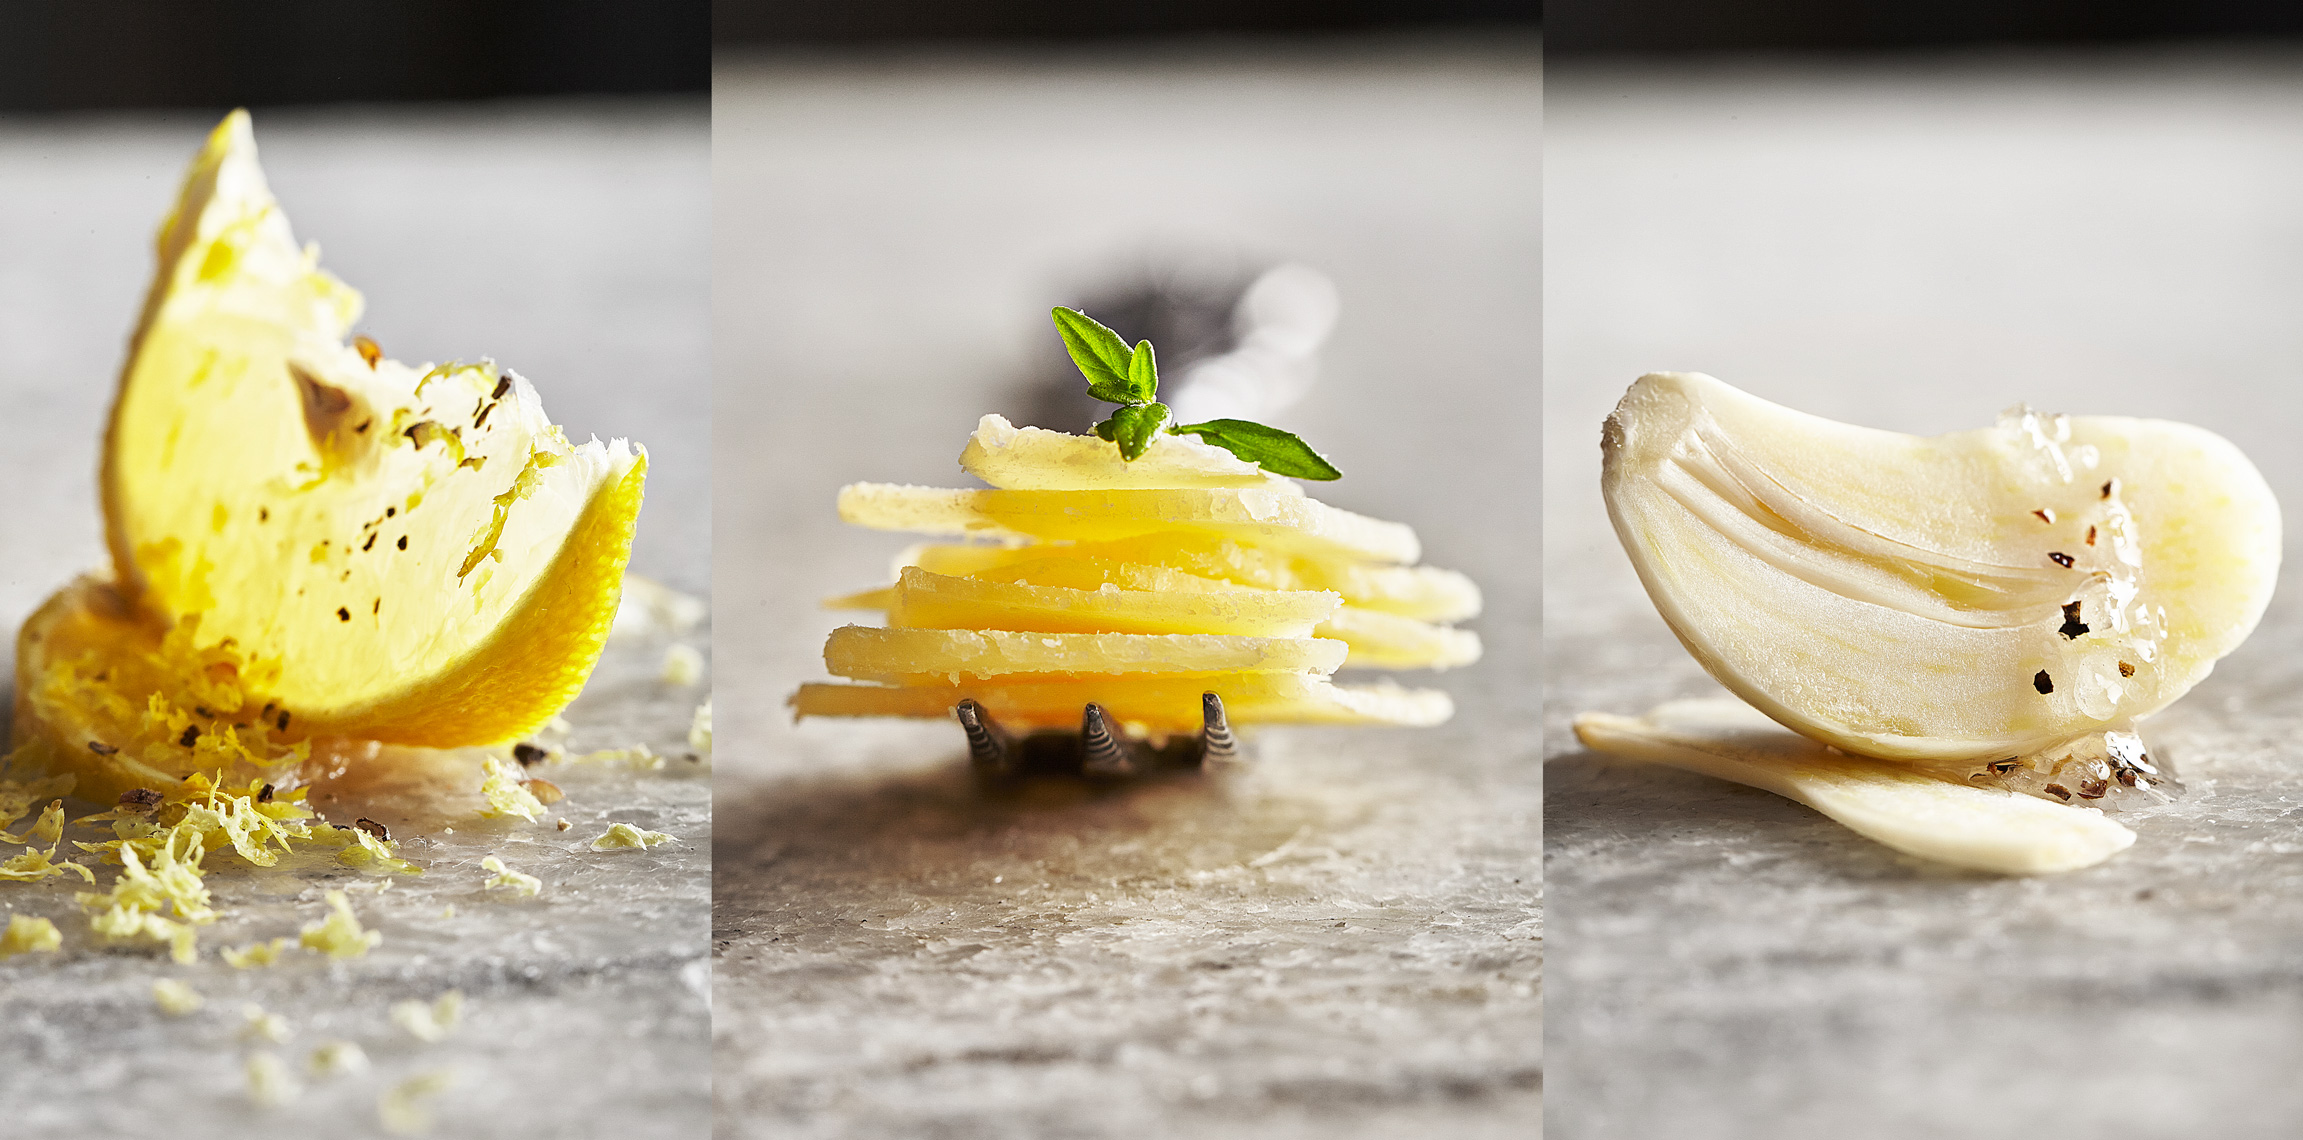 Lemon-Zest-Parmesan-Cheese-Garlic-Olive-Oil-Marble-Triptych_rfc